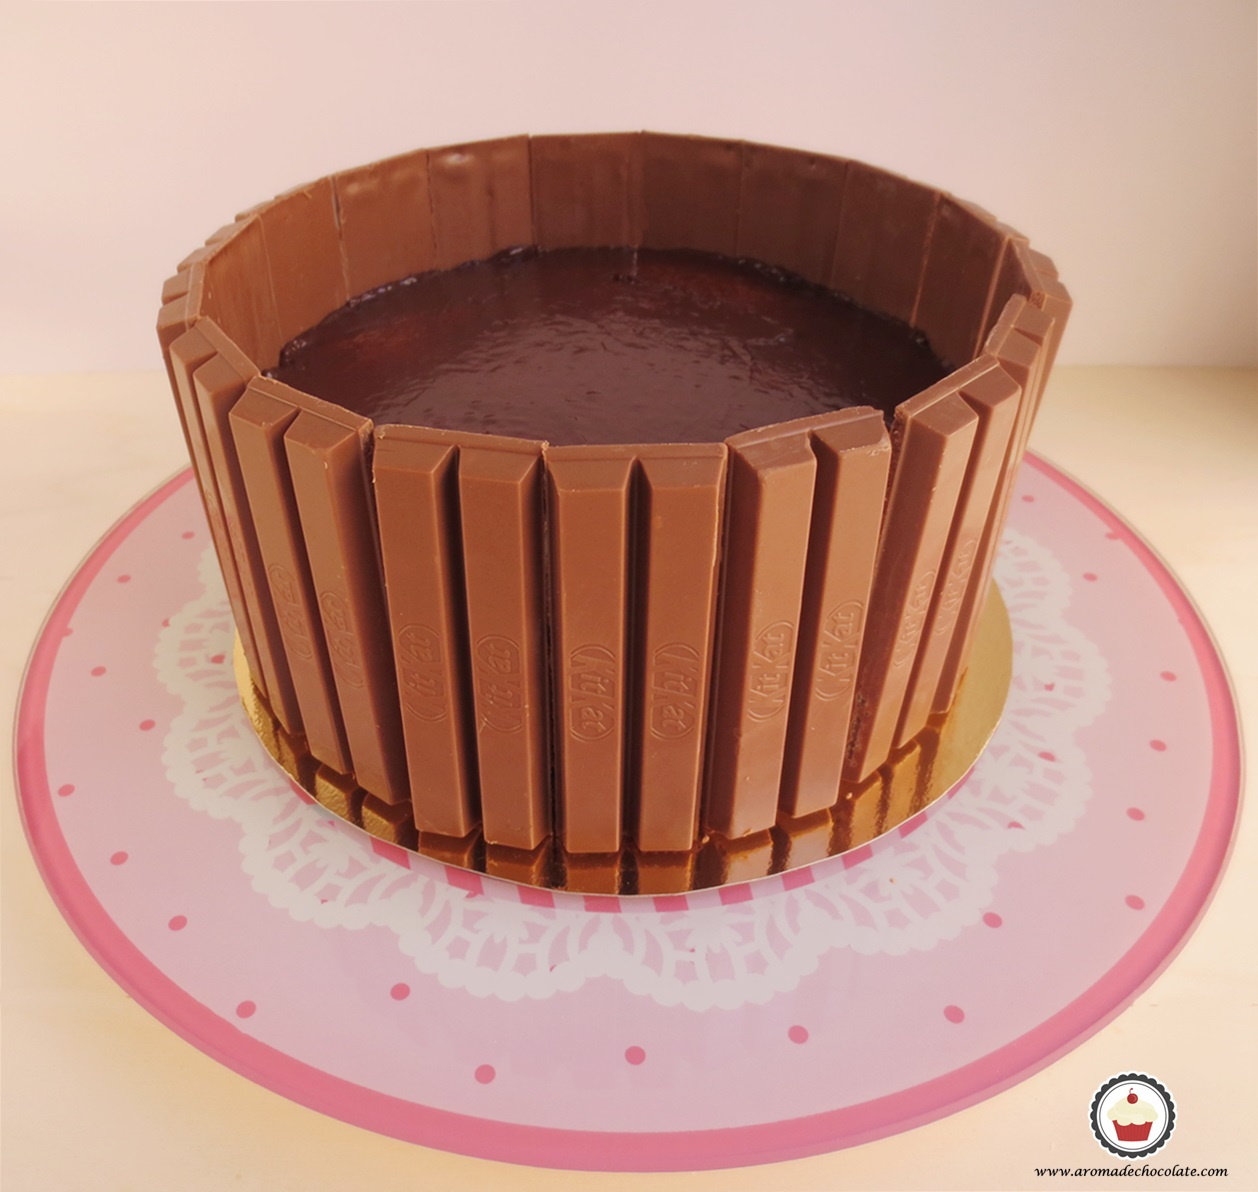 Kit kat colocados tarta Peppa pig. Aroma de chocolate.